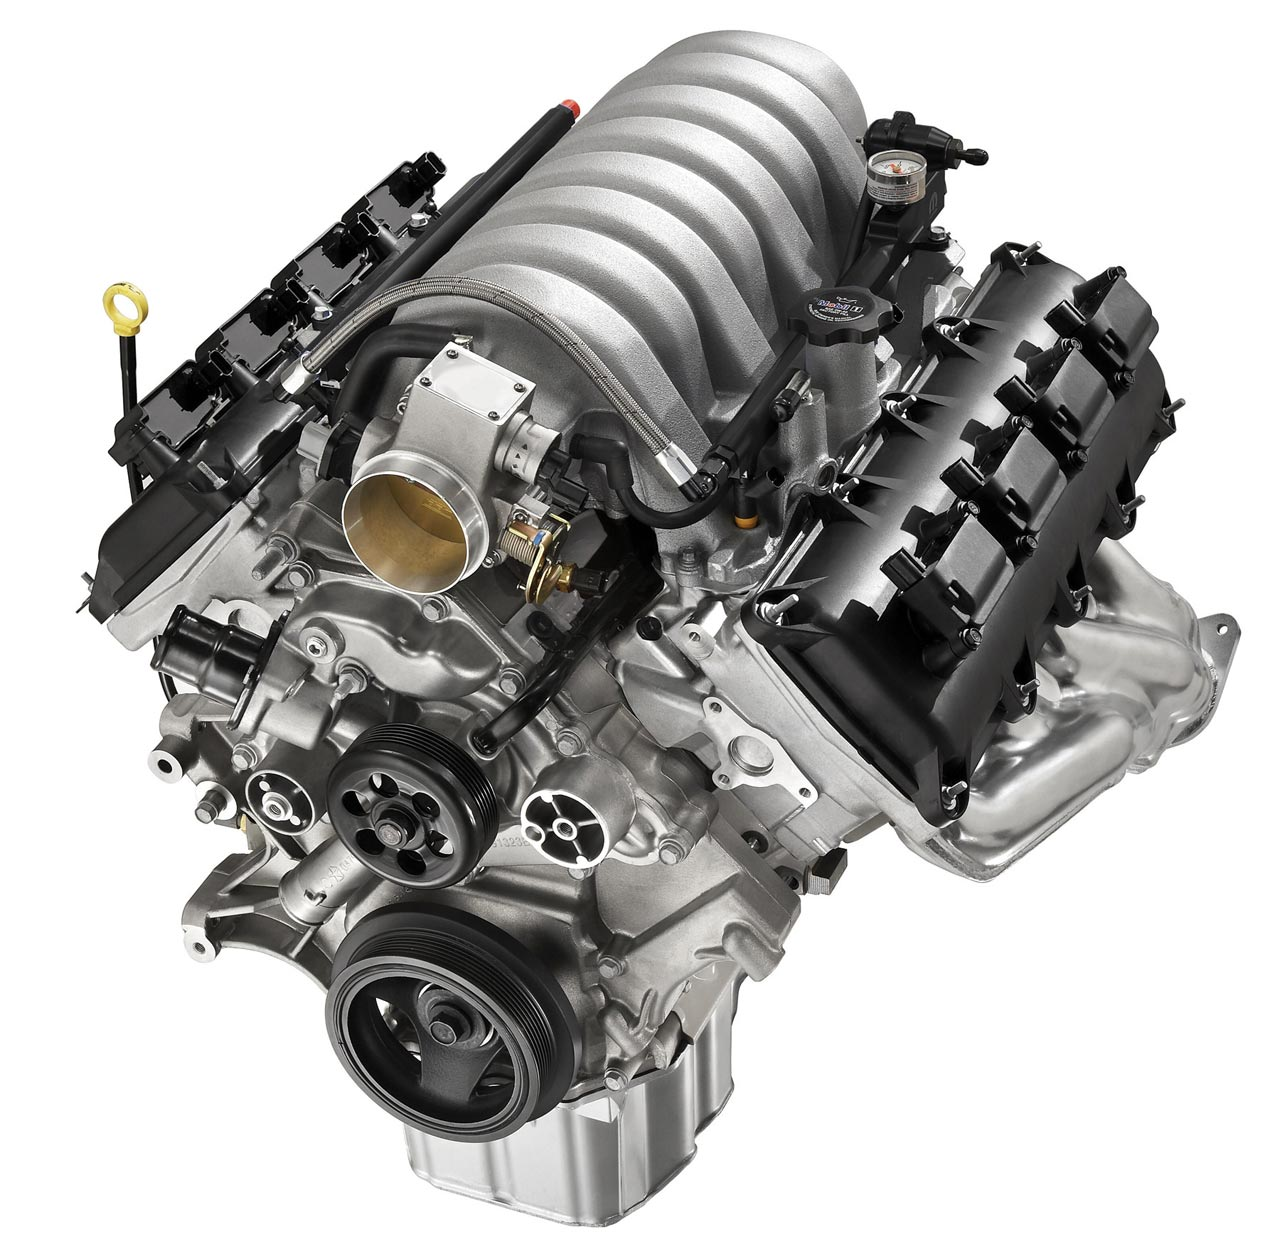 Mopar Releases Modern All Aluminum 426 Hemi Crate Engine